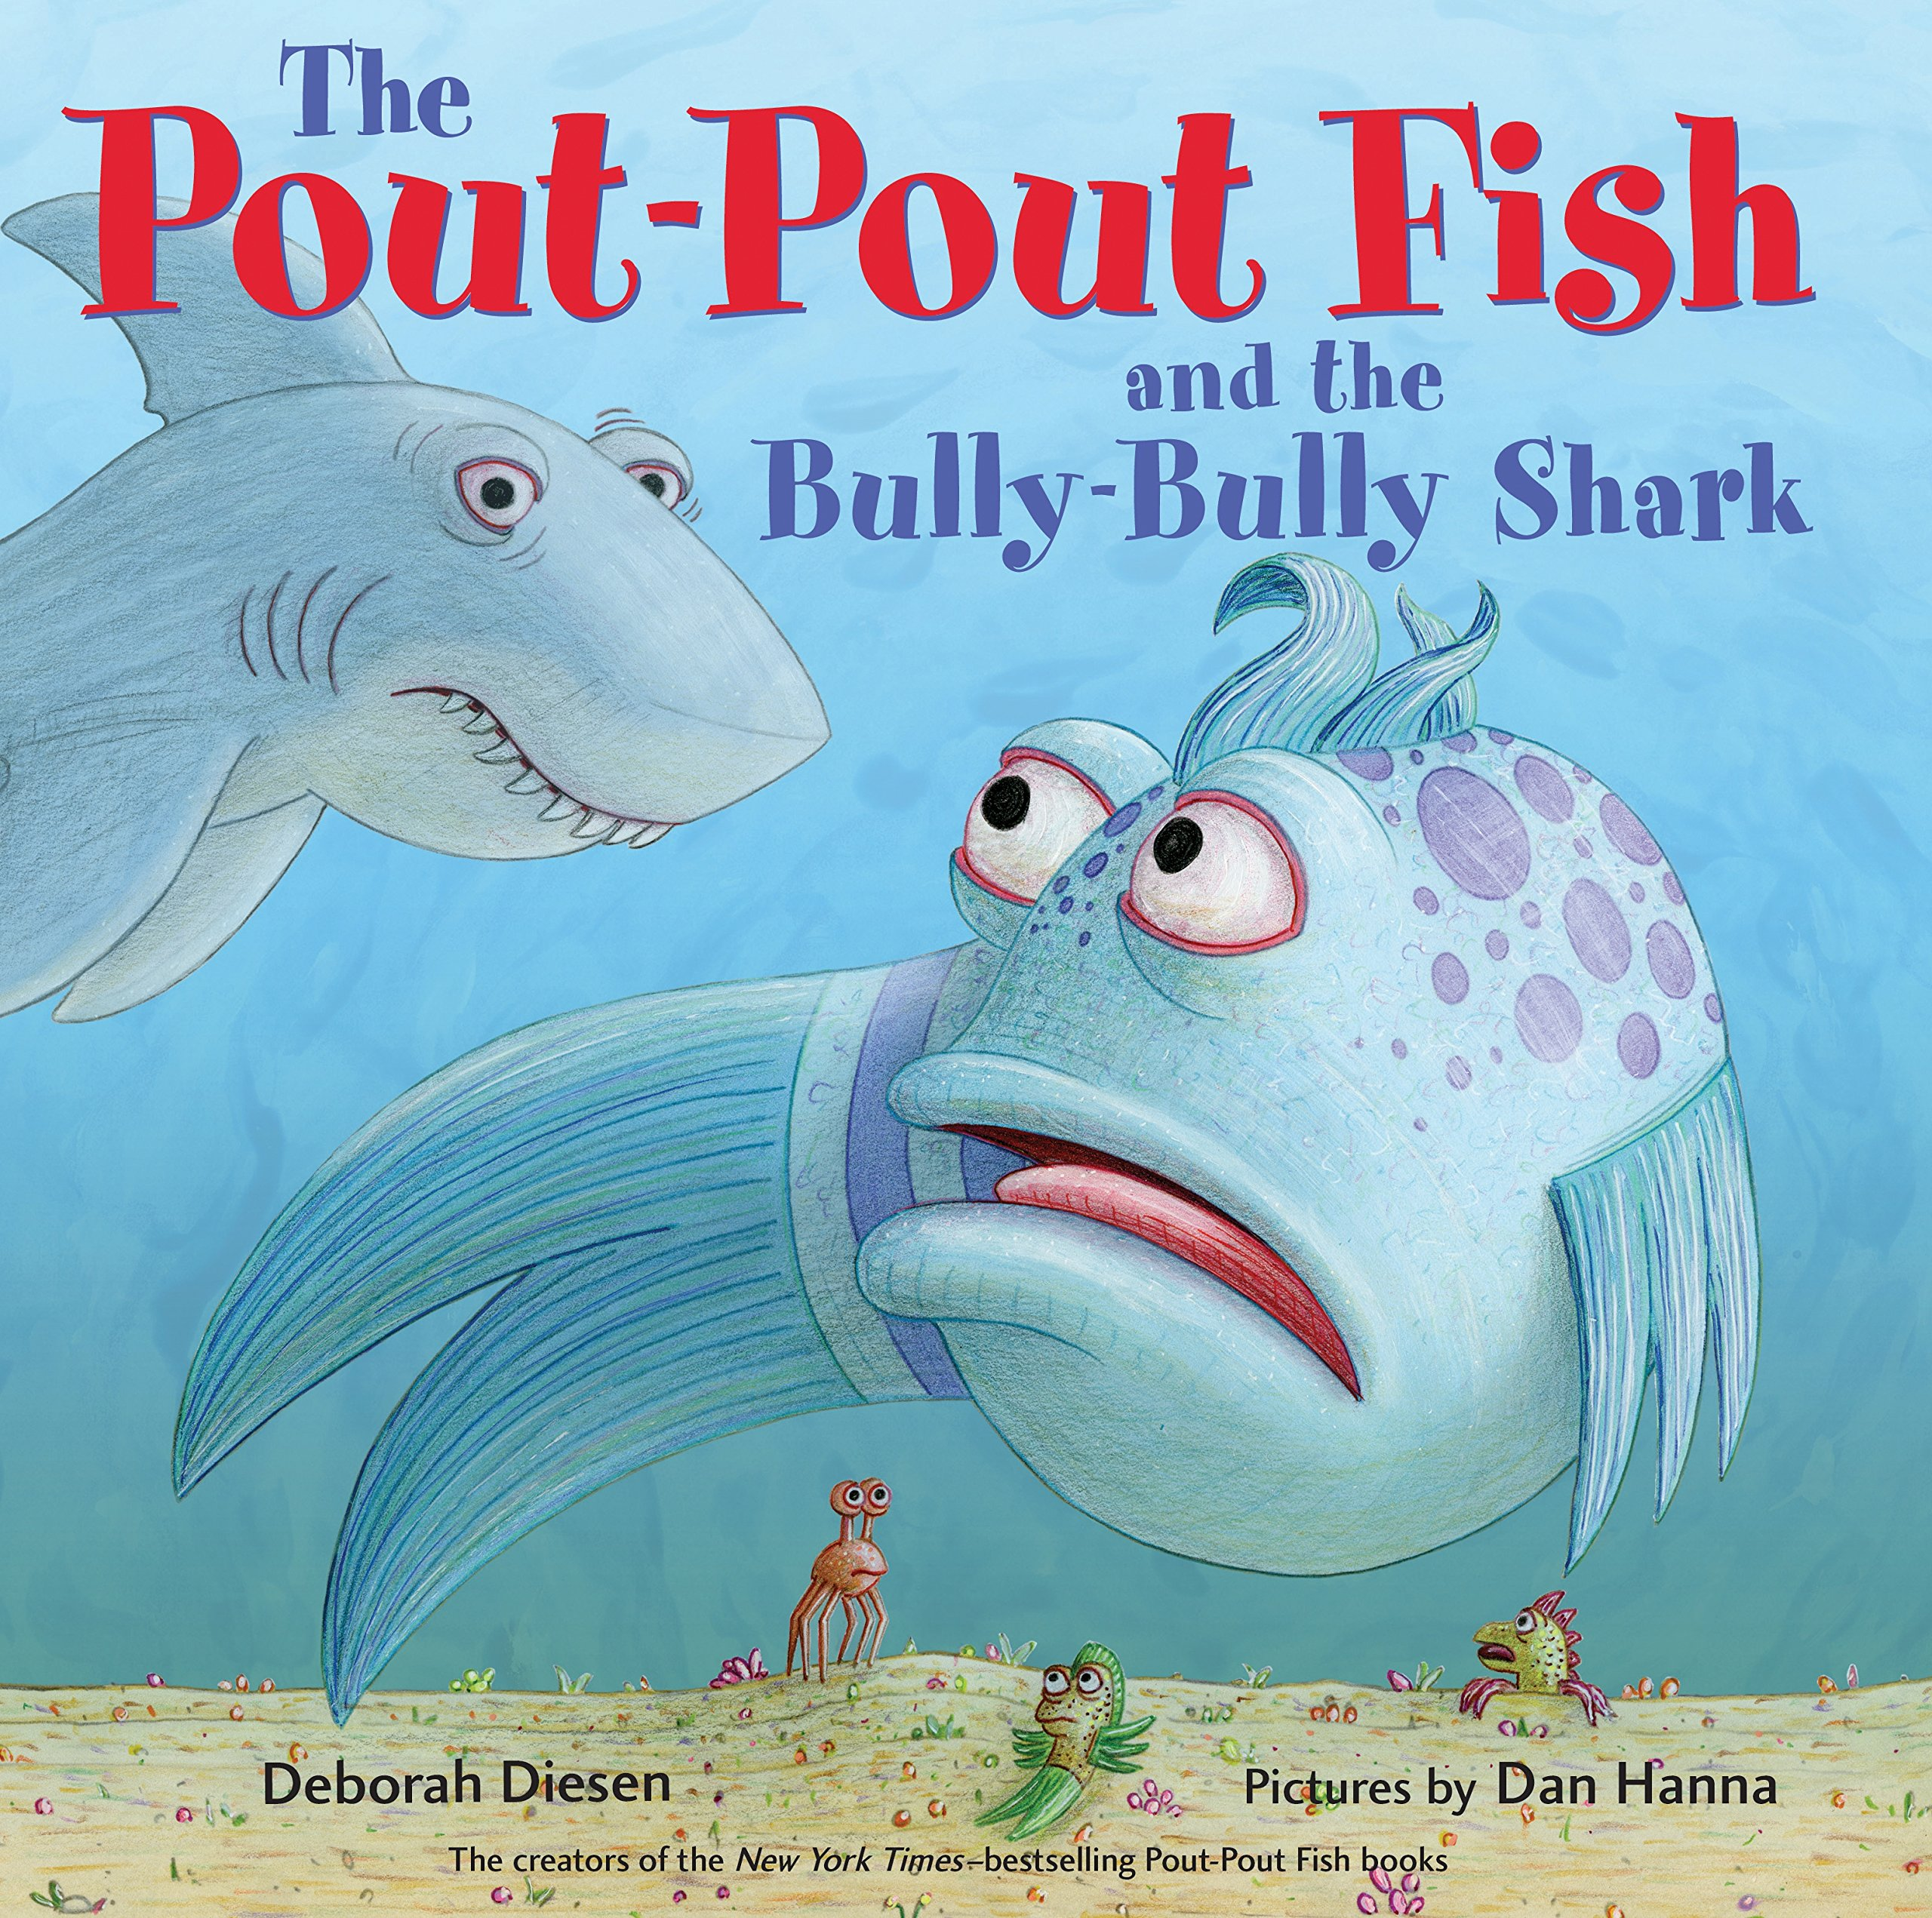 Buy The Pout-Pout Fish and the Bully-Bully Shark (A Pout